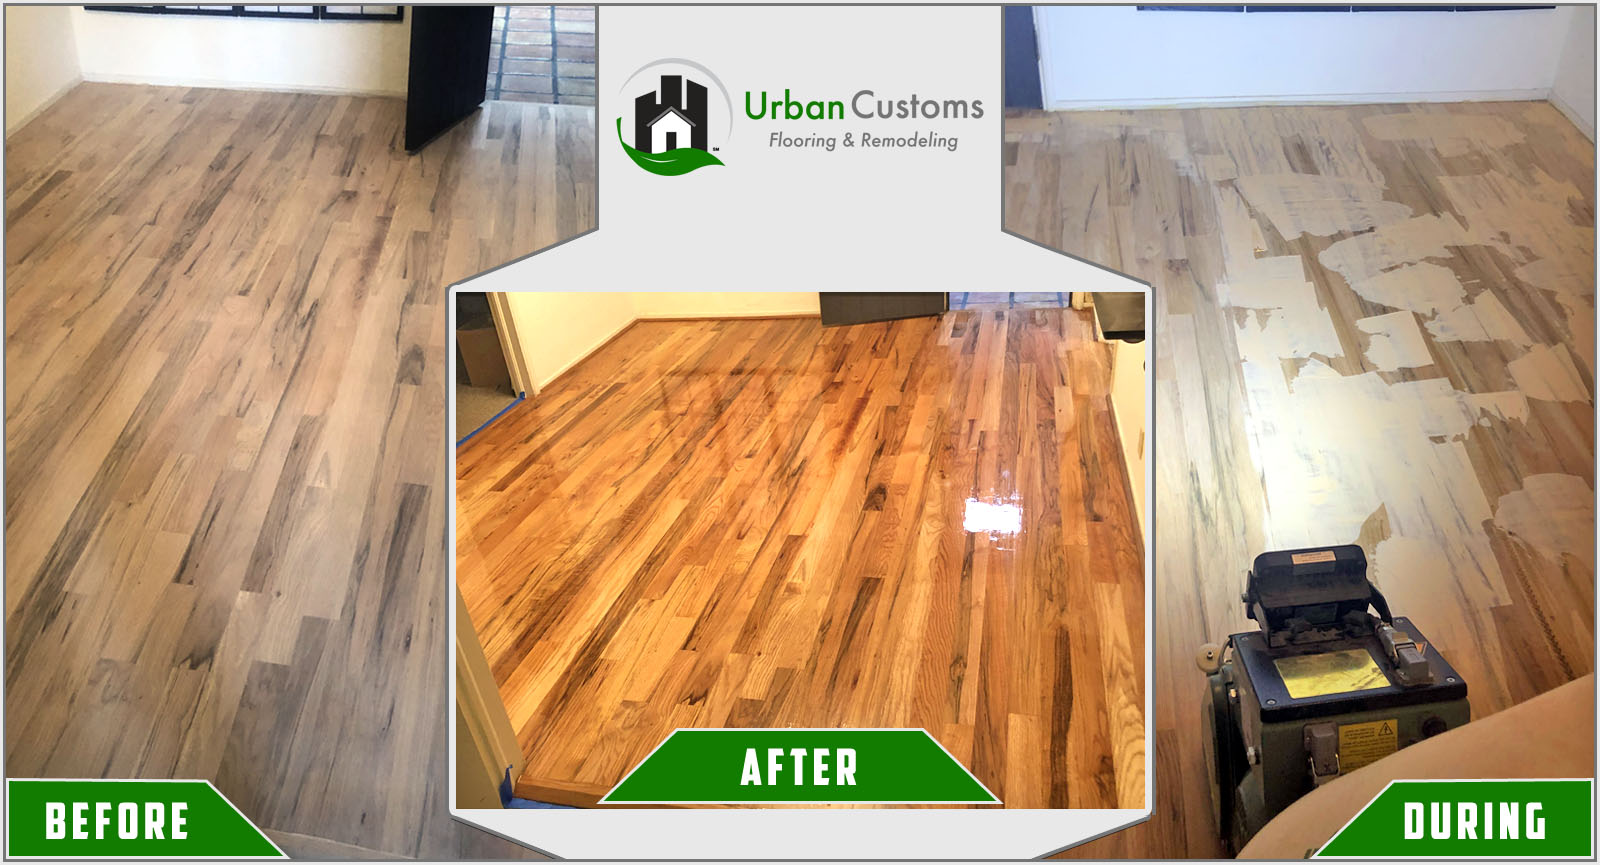 Wood Floor Refinishing Before and After